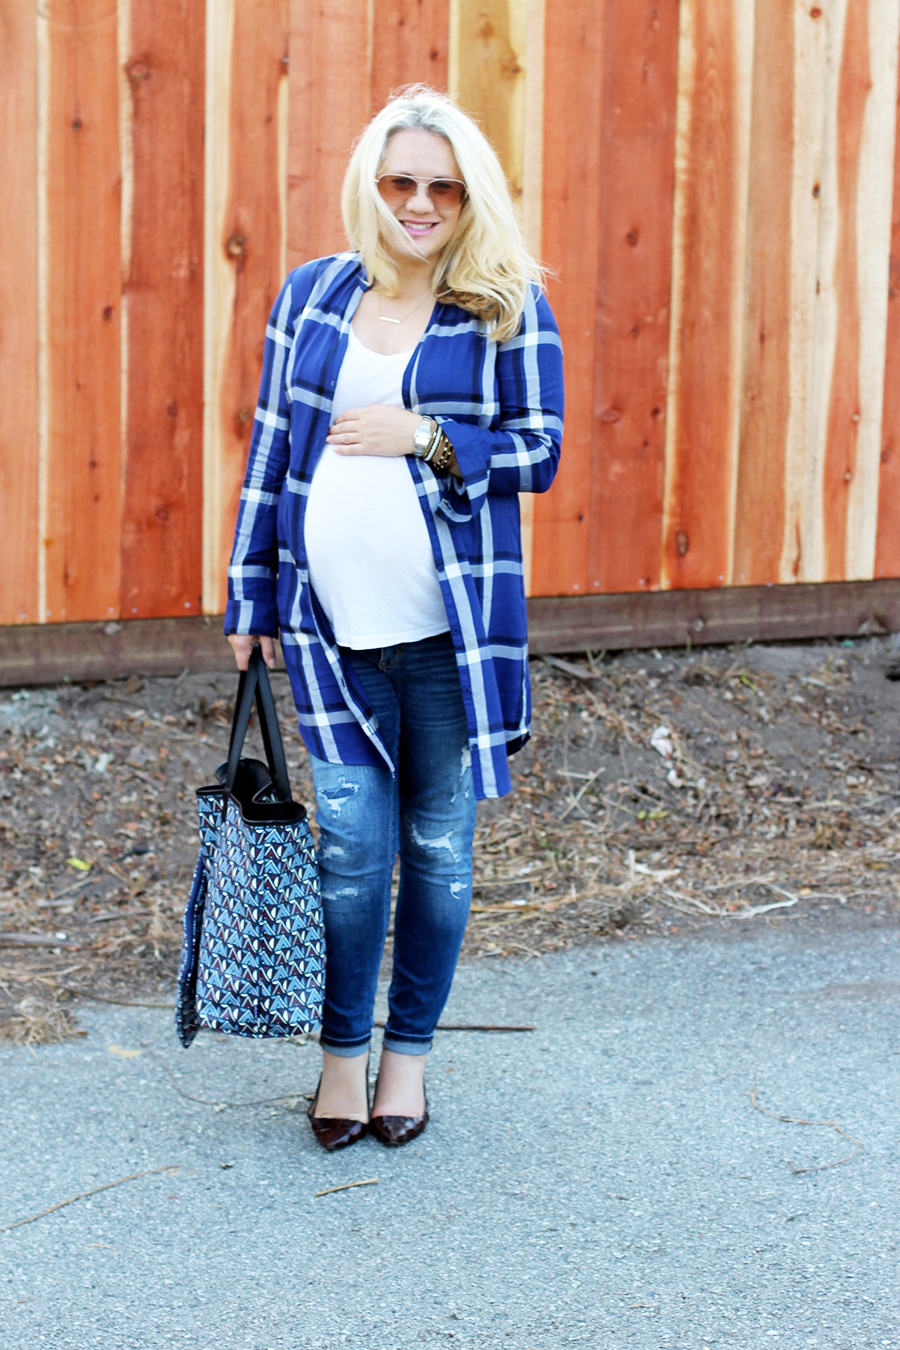 Plaid Shirtdress-Maternity Style-Styling Your Baby Bump-Styling Tips-Pregnancy Style-Have Need Want 6